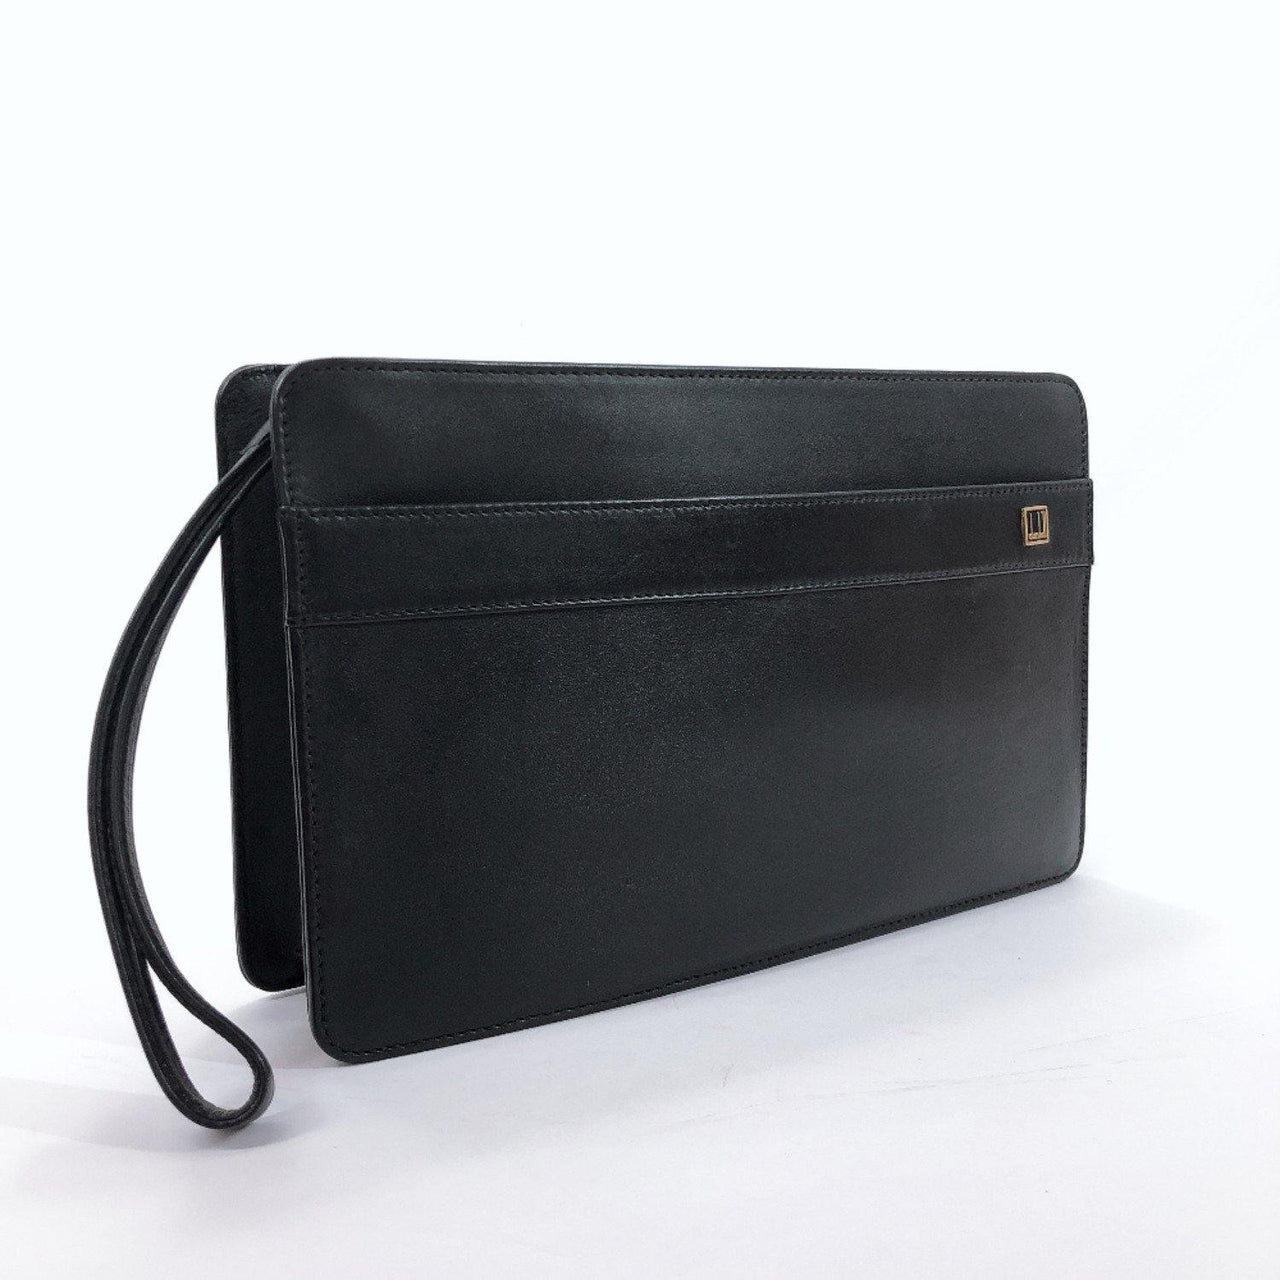 Dunhill Clutch bag leather black mens Used - JP-BRANDS.com